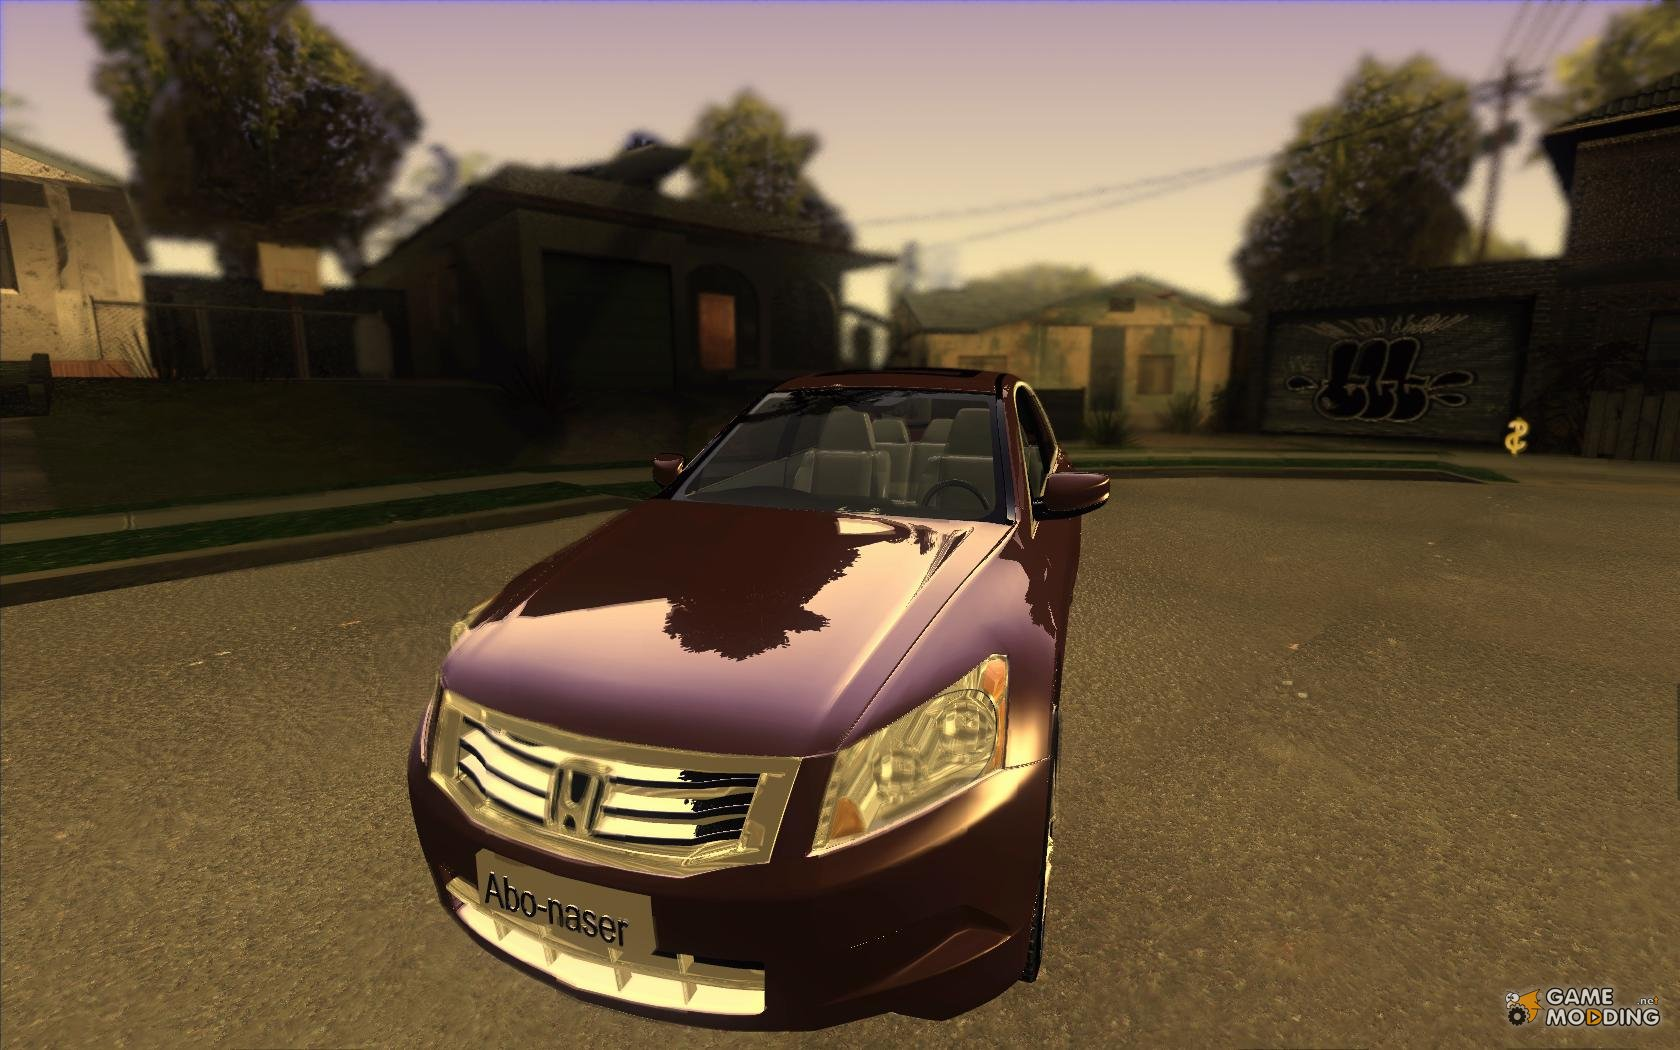 ENB Reflections on cars